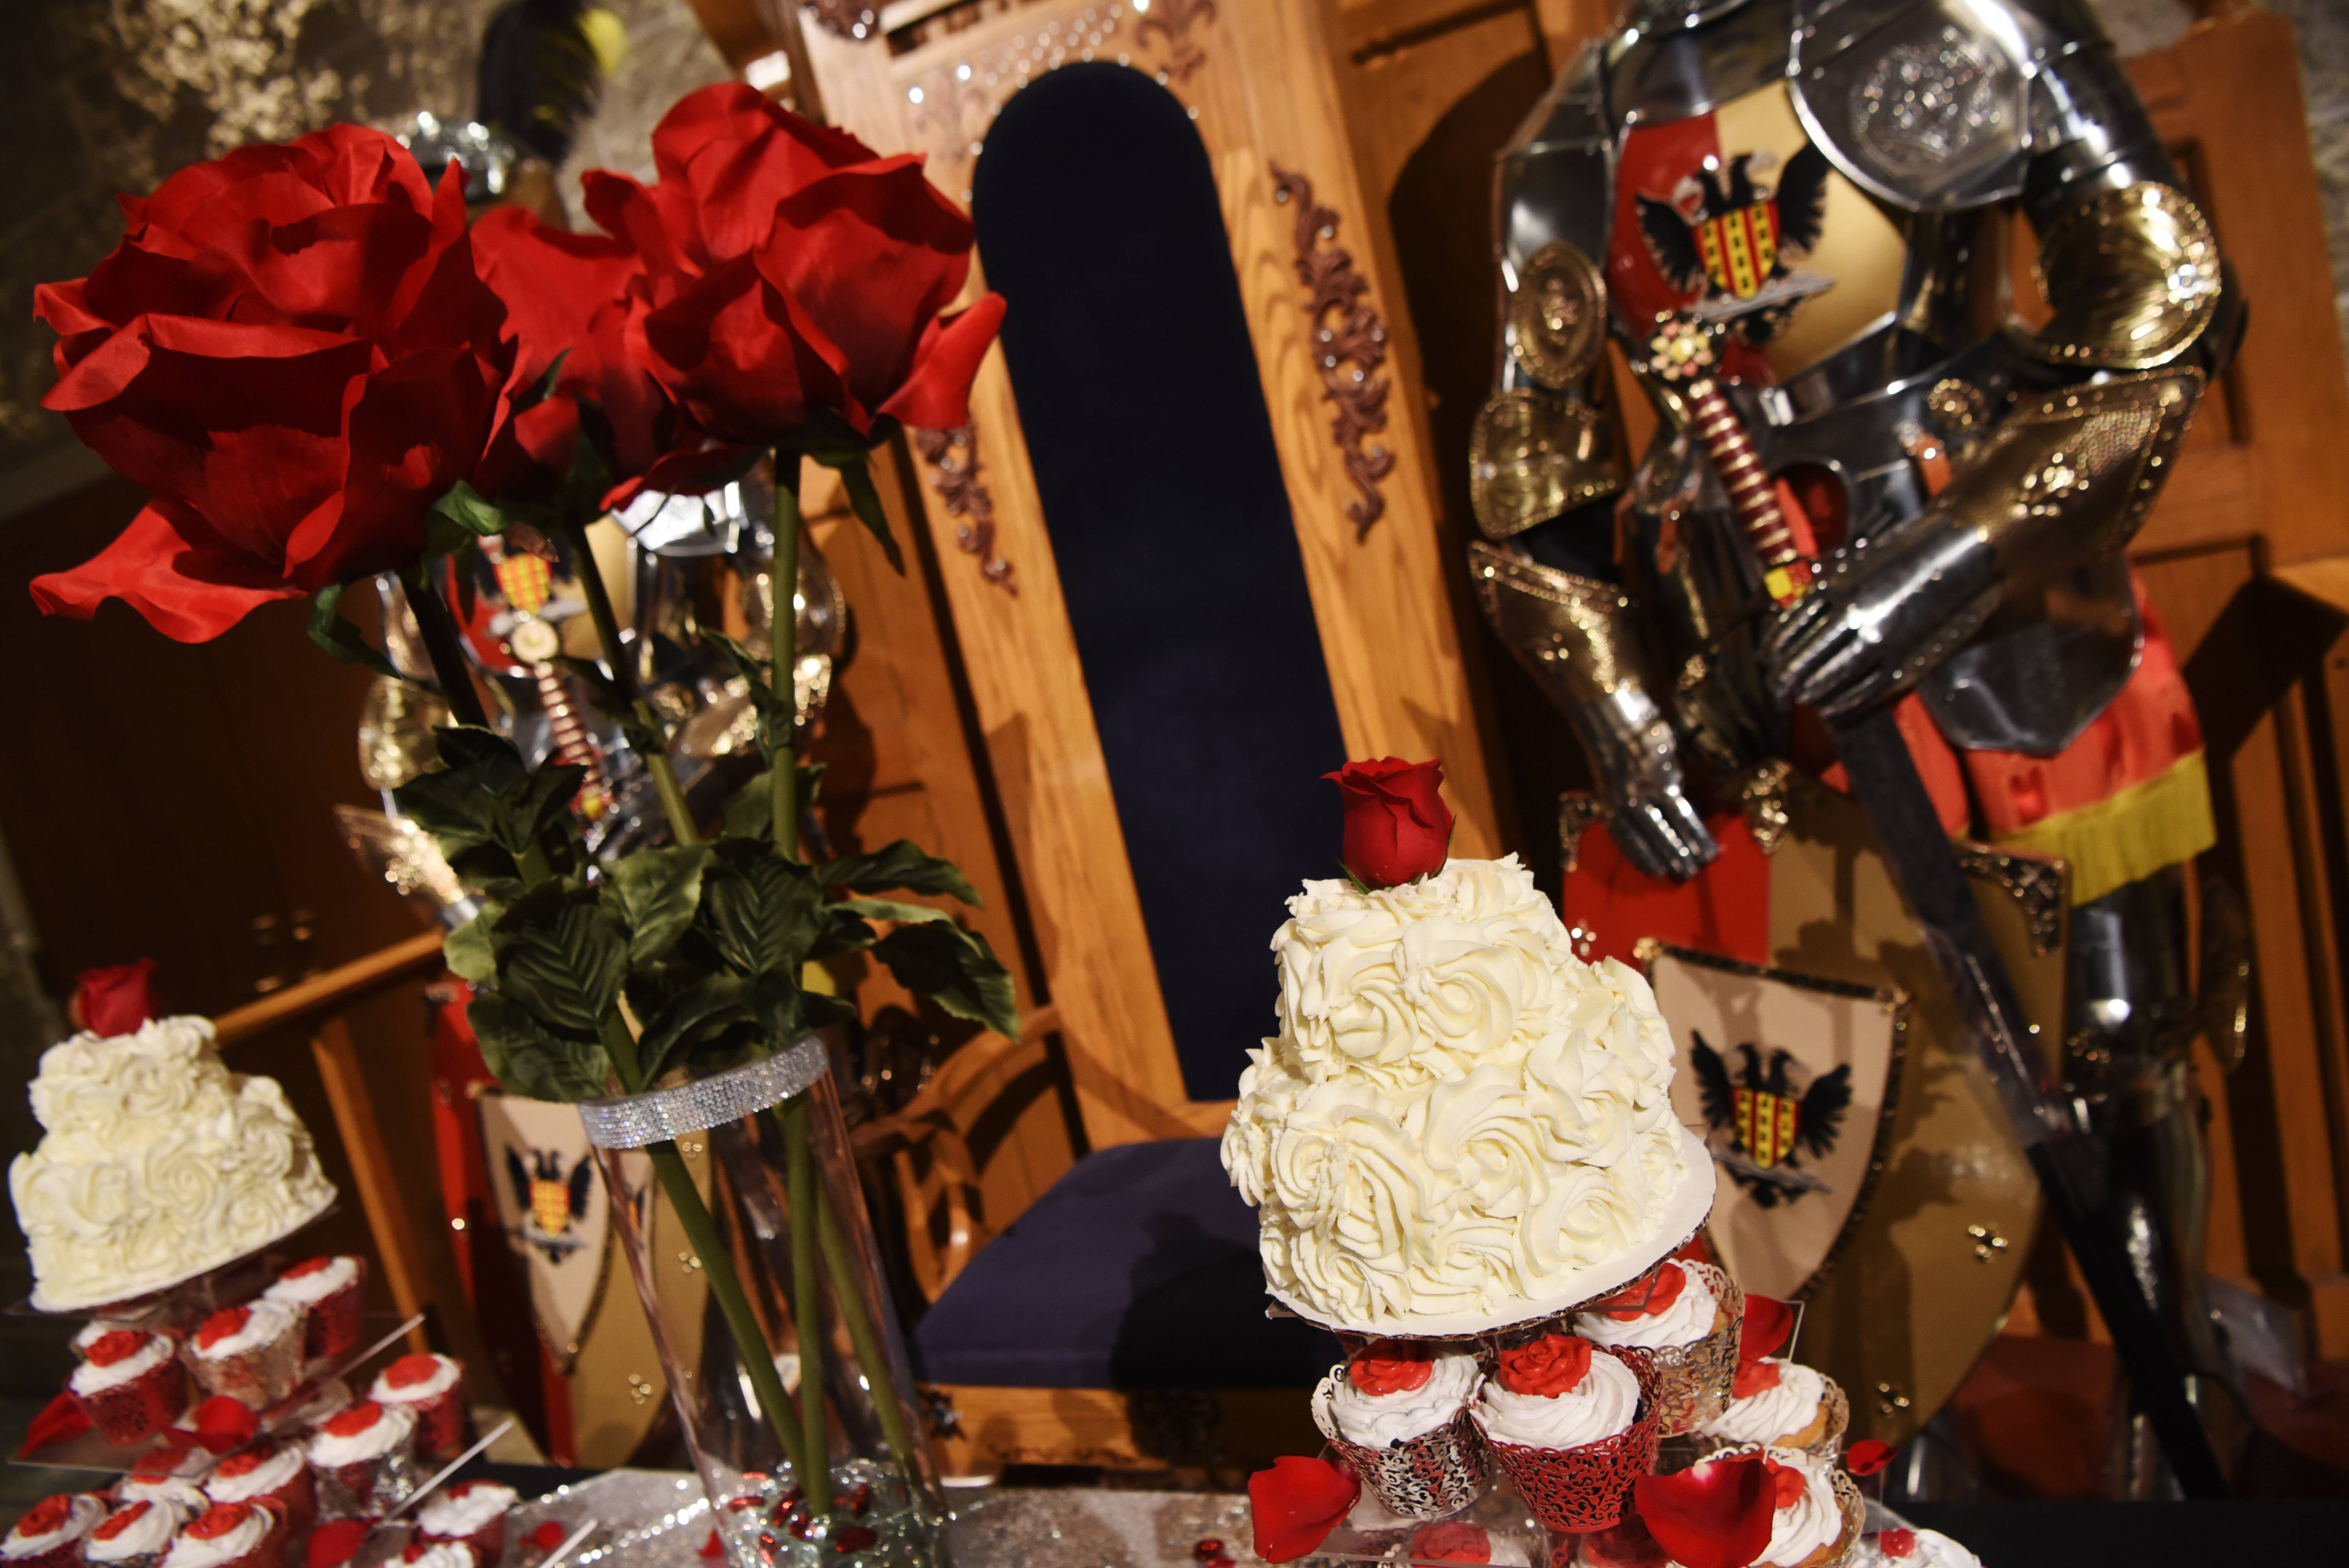 Cake is ready to be served during the reception for 45 couples who renewed their wedding vows Thursday during a Valentine's Day ceremony at Medieval Times Castle in Schaumburg.